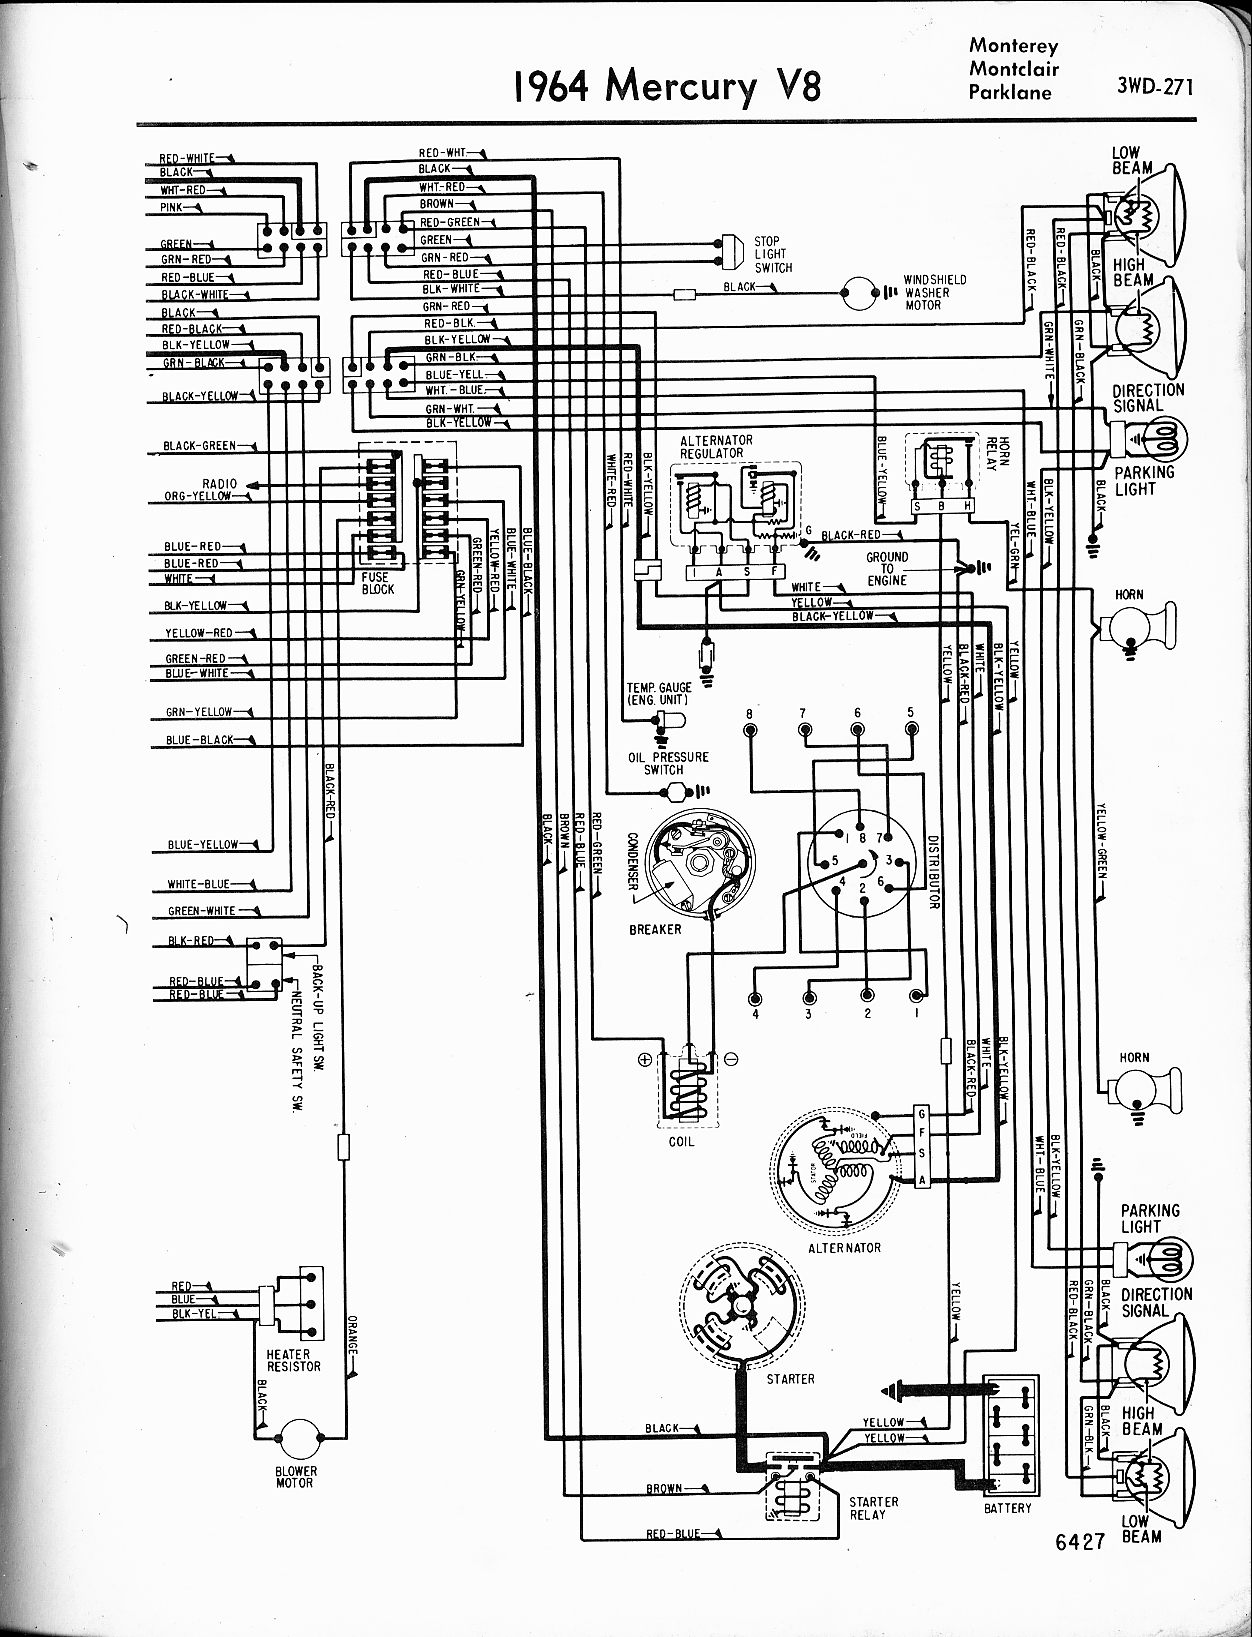 1985 corvette wiring diagram ruc yogaundstille de \u2022 1979 Corvette Fuse Box 1964 corvette fuse box diagram wiring diagram blog data rh 10 13 tefolia de 1985 corvette